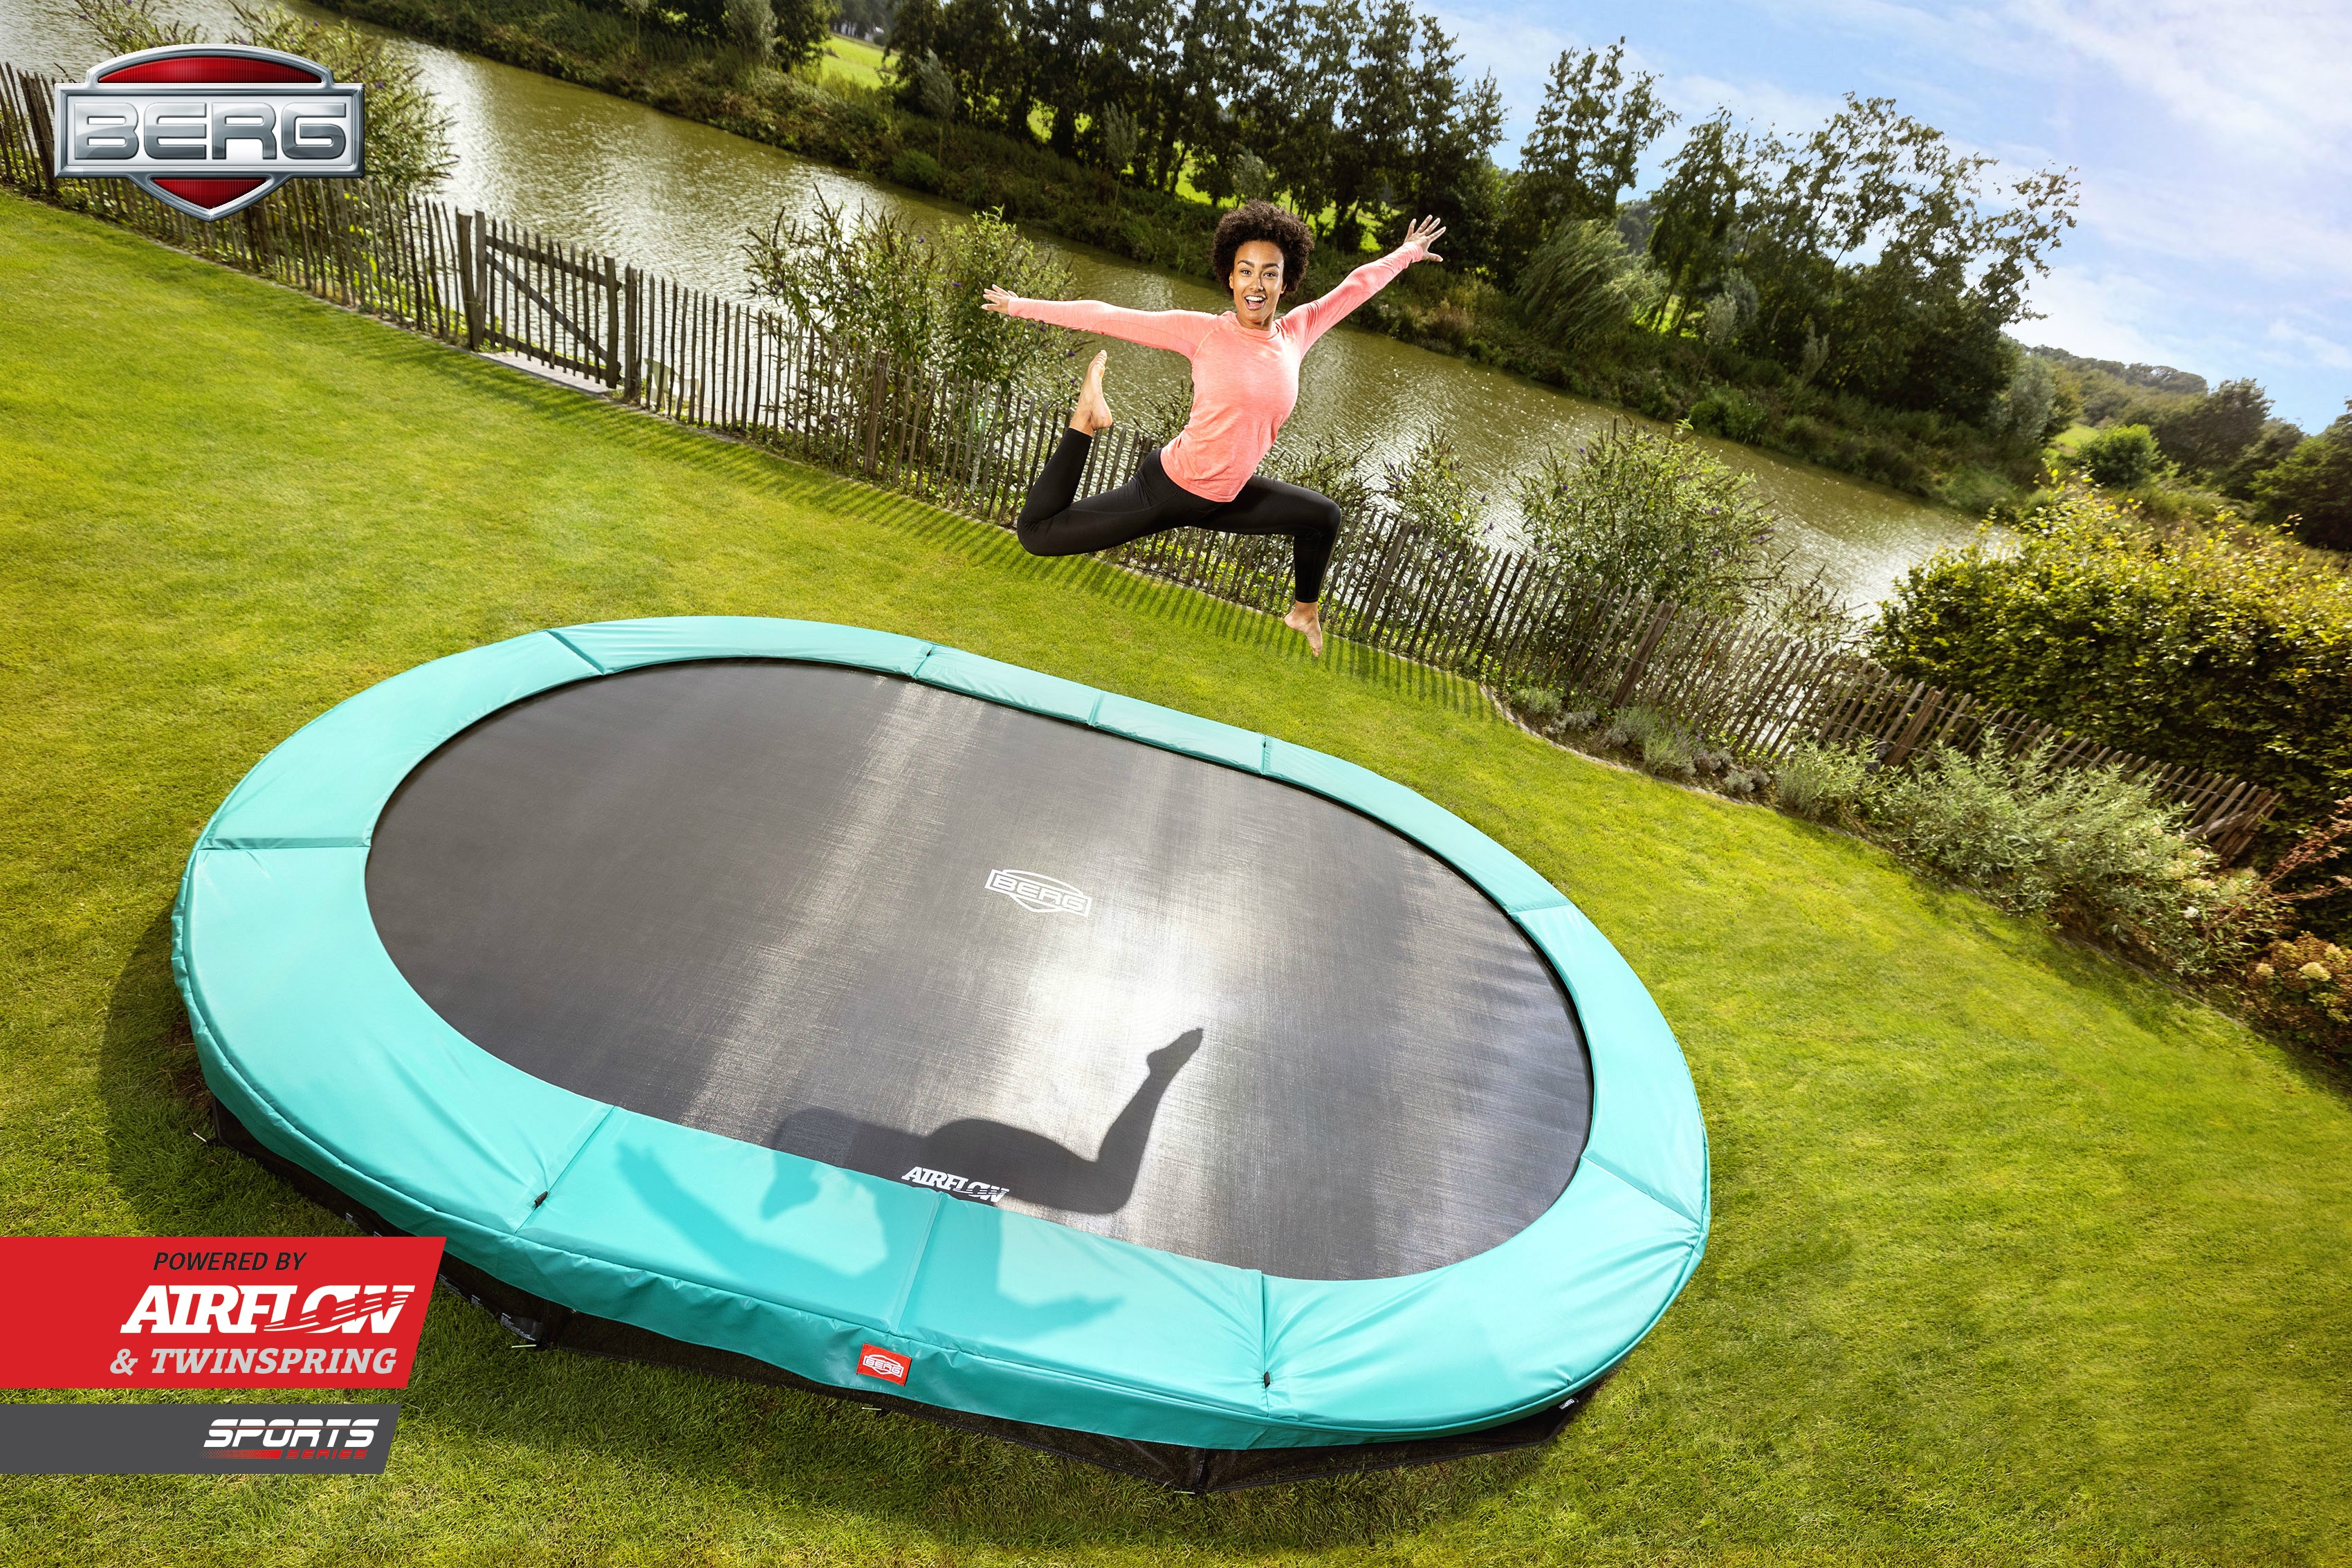 Trampolin 3 5 Meter Berg Trampolin Inground Grand Champion Green Oval 520 Cm